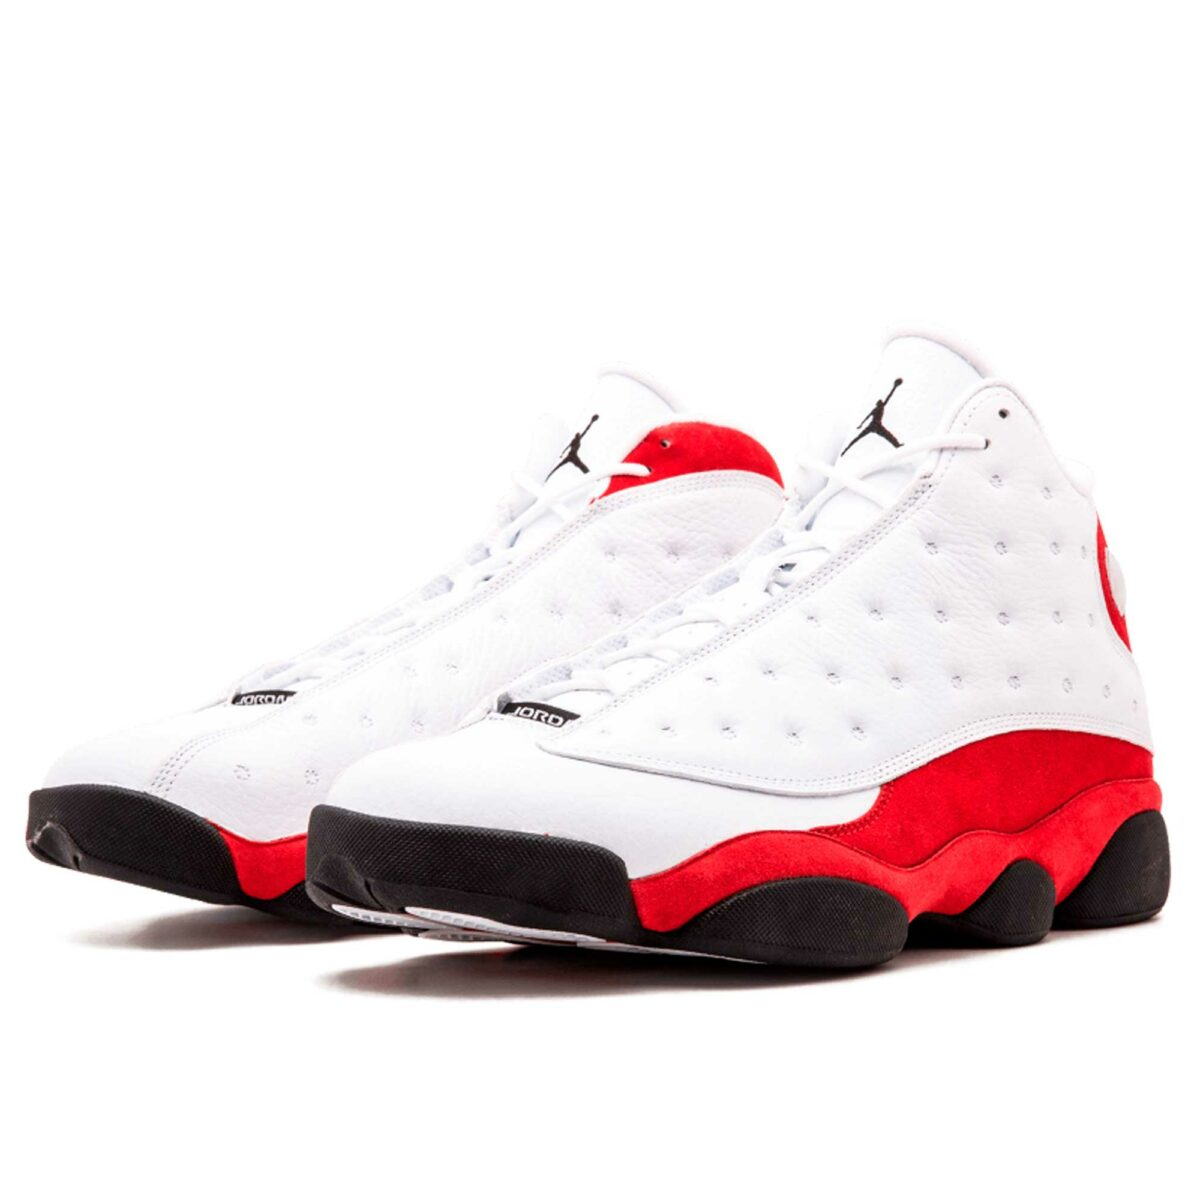 nike air Jordan retro 13 Chicago 414571-122 купить